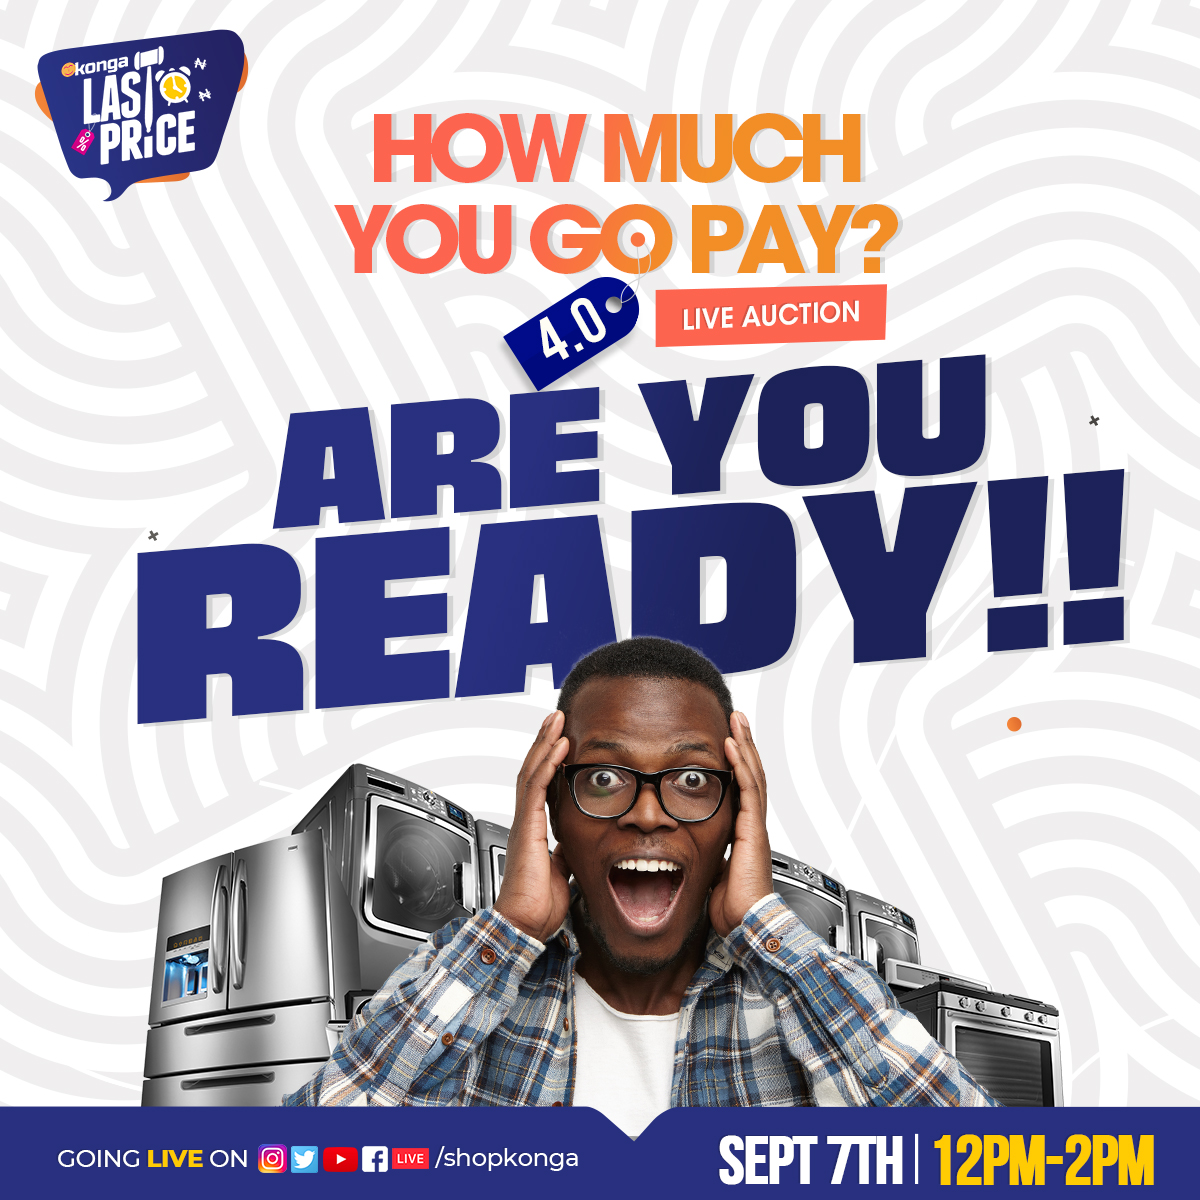 Over 300,000 Expected as Konga's Digital Auction Goes Live by 12pm